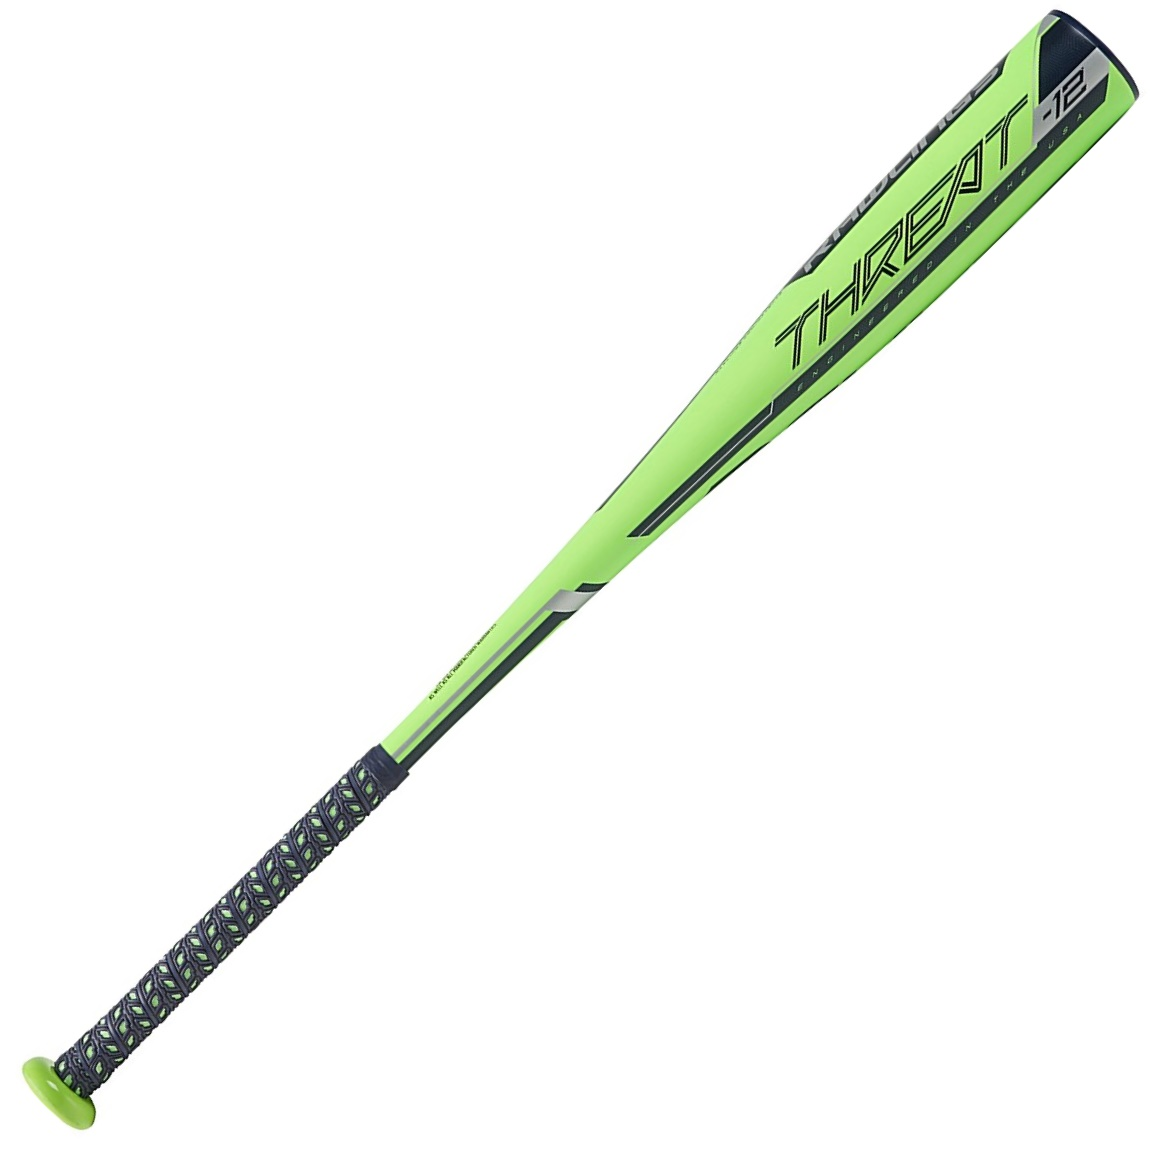 rawlings-2018-threat-usa-baseball-bat-31-inch-19-oz US9T12-3119 Rawlings 083321534973 100% composite design - increases trampoline and overall pop Ultra-lightweight construction